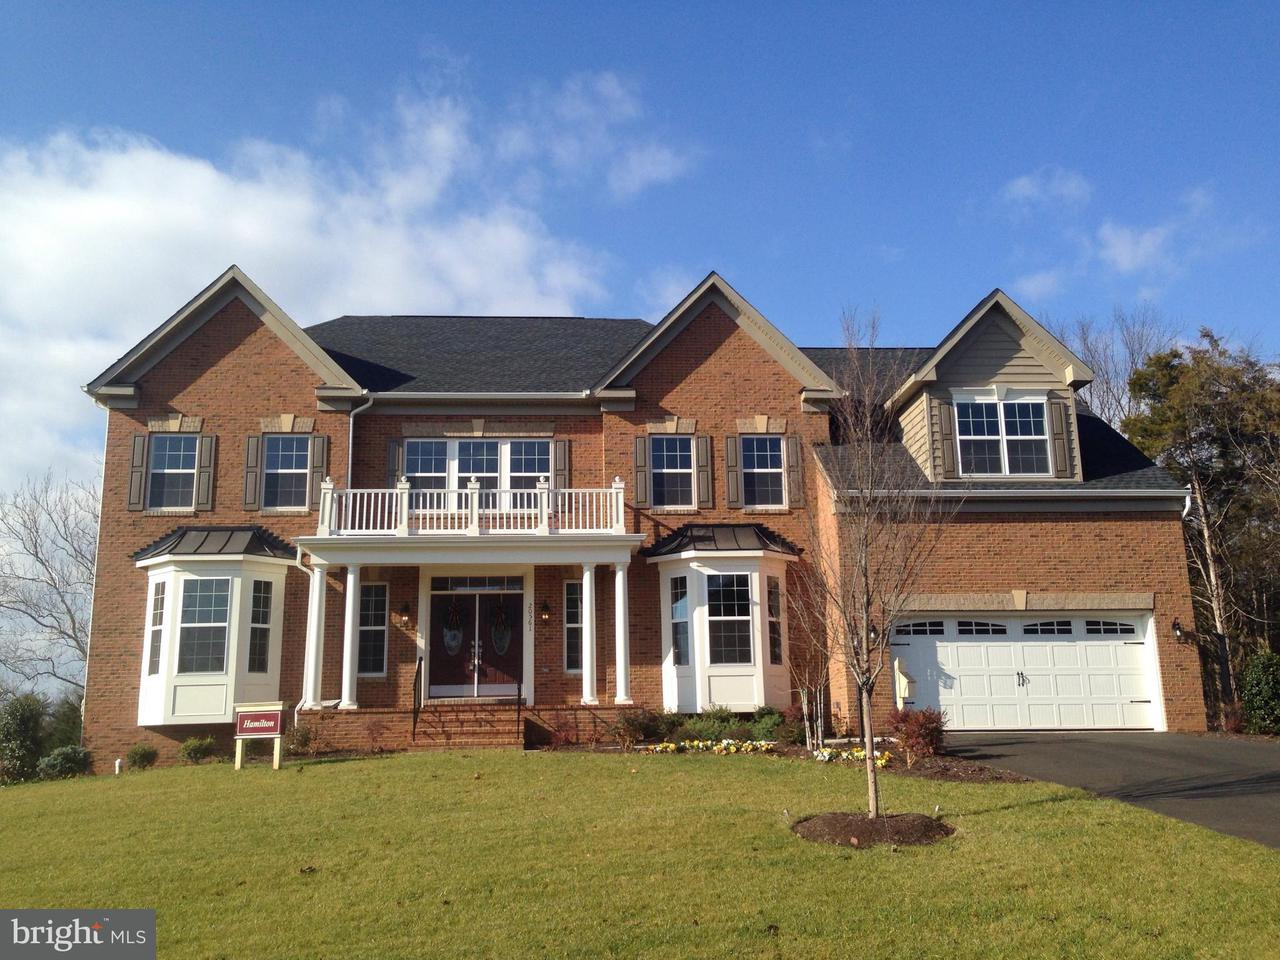 Single Family Home for Sale at 7751 Lions Gate Ct #4 7751 Lions Gate Ct #4 Falls Church, Virginia 22043 United States